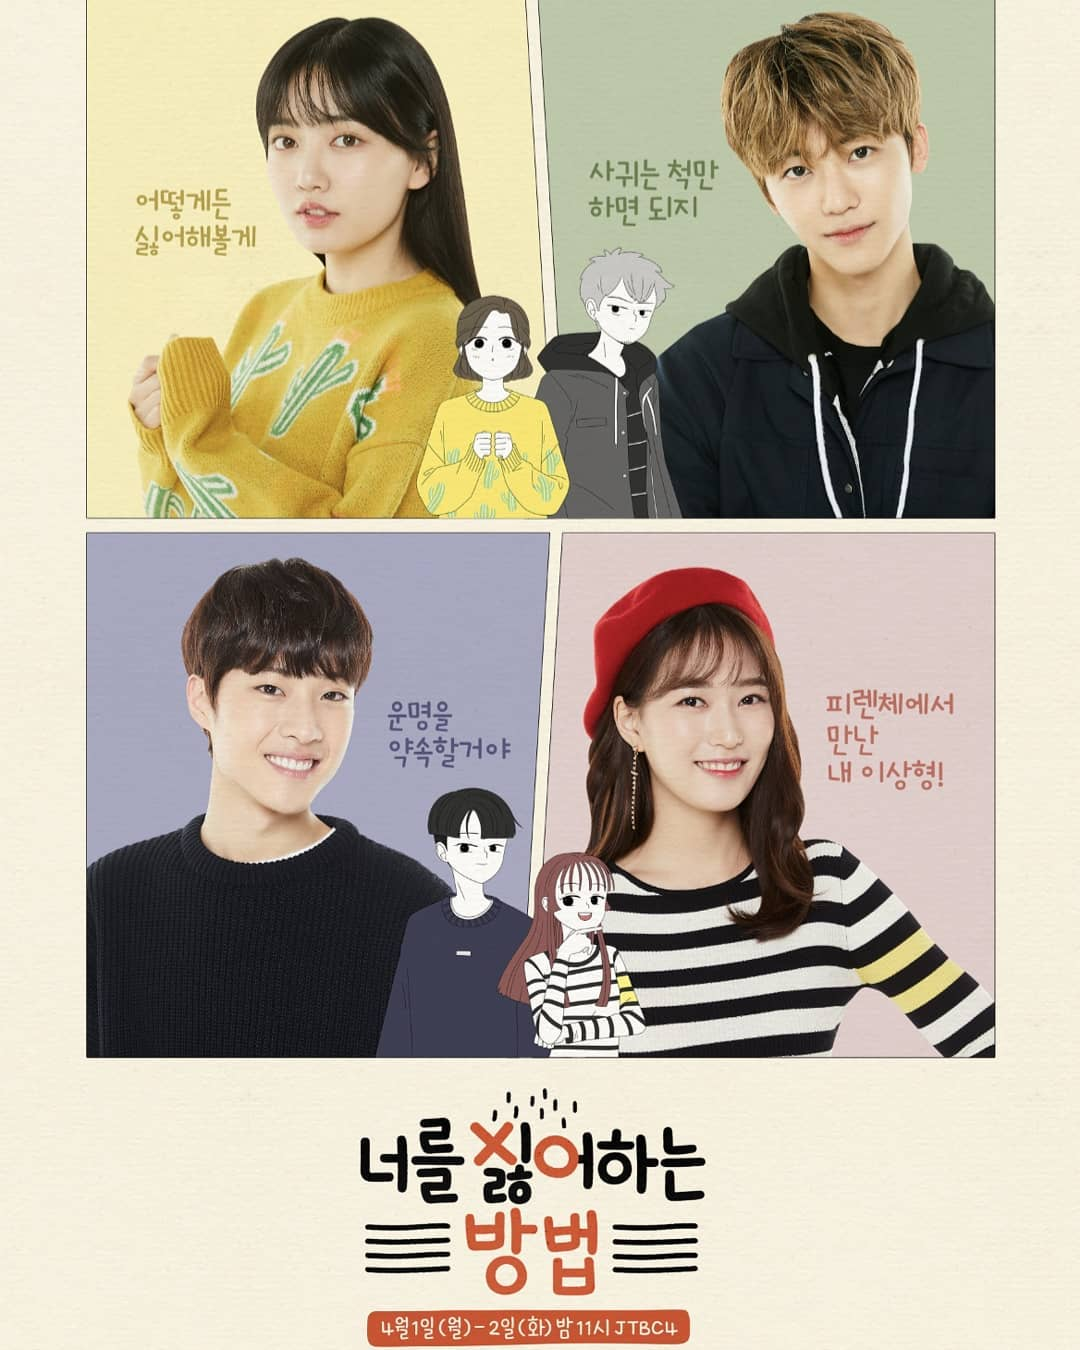 Nct S Jaemin Kim Ji In And More Feature In Poster For New Webtoon Based Drama Soompi